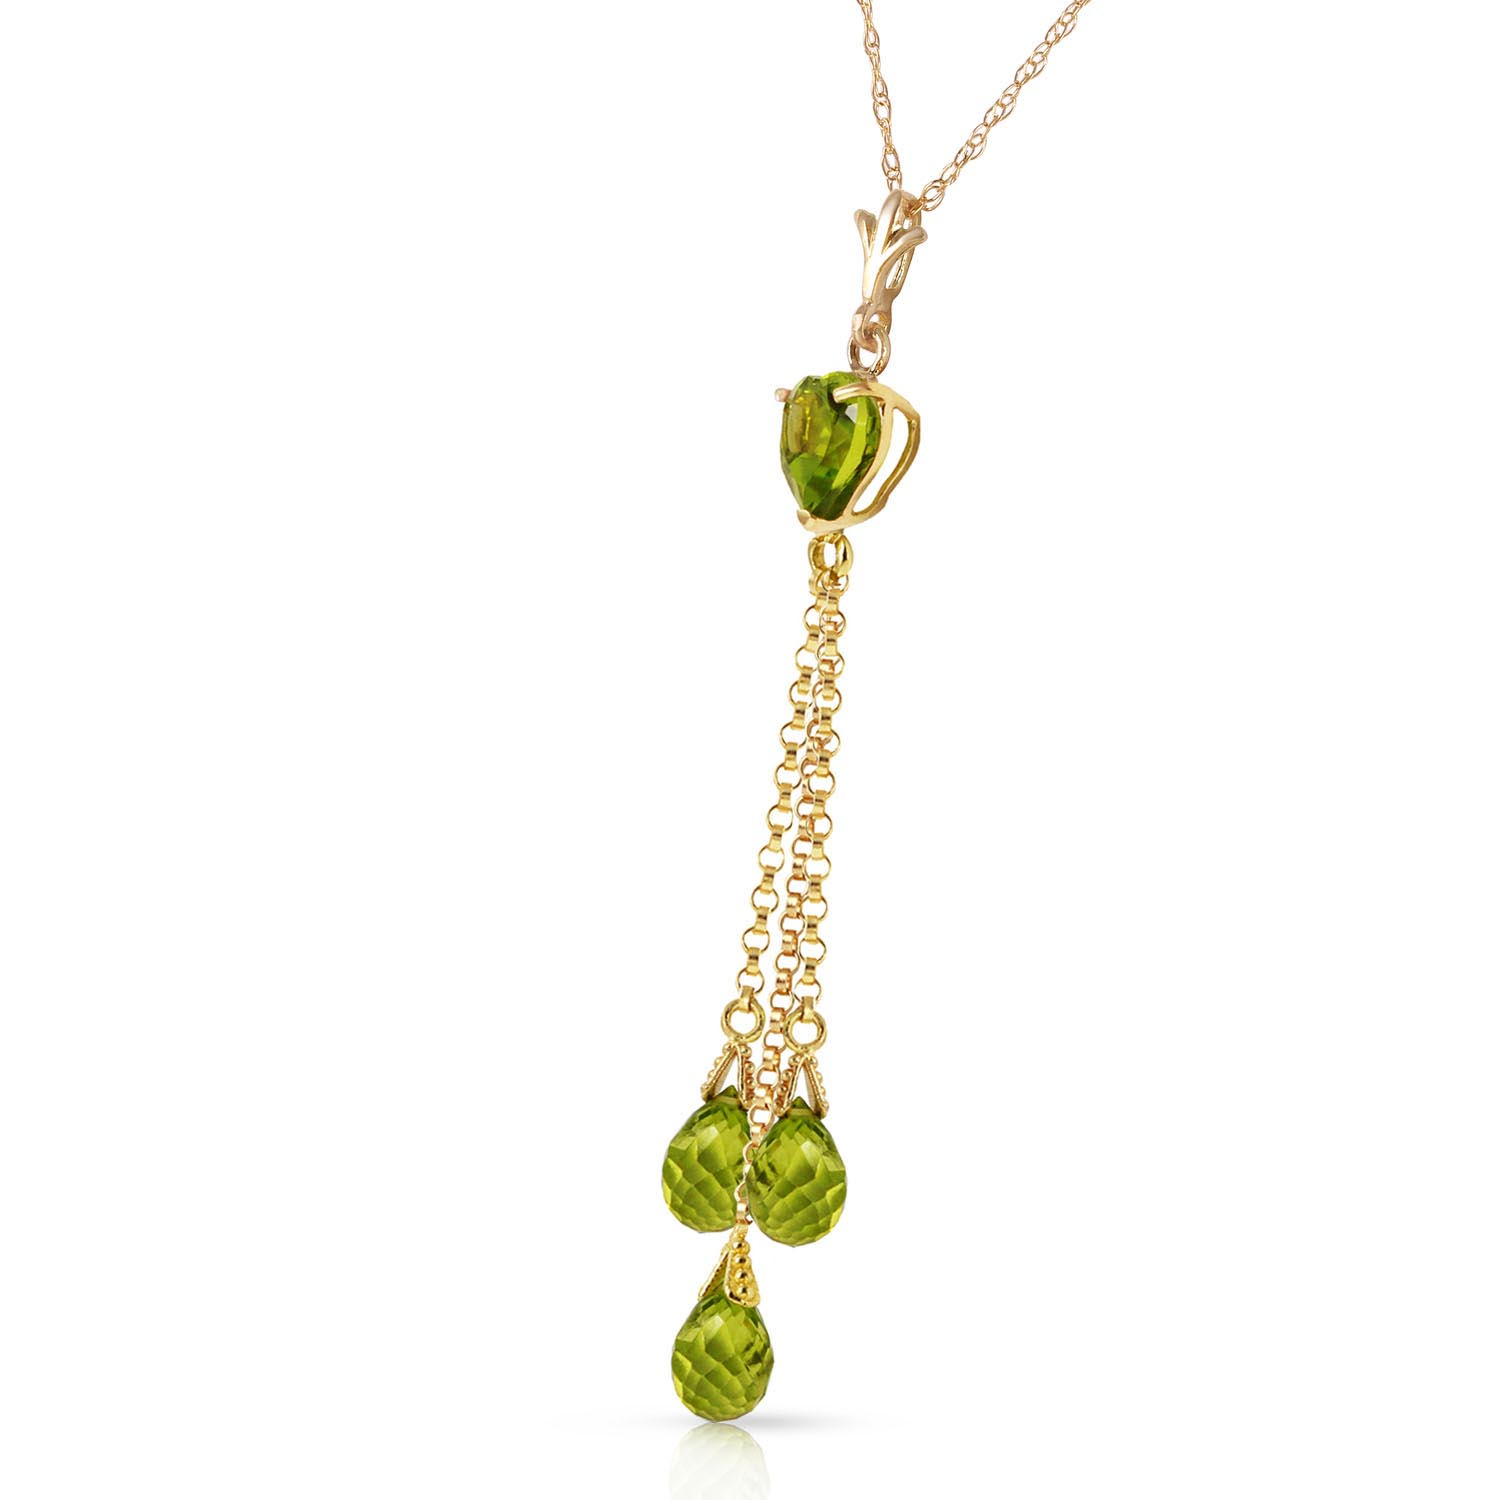 Peridot Comet Tail Heart Pendant Necklace 4.75ctw in 9ct Gold